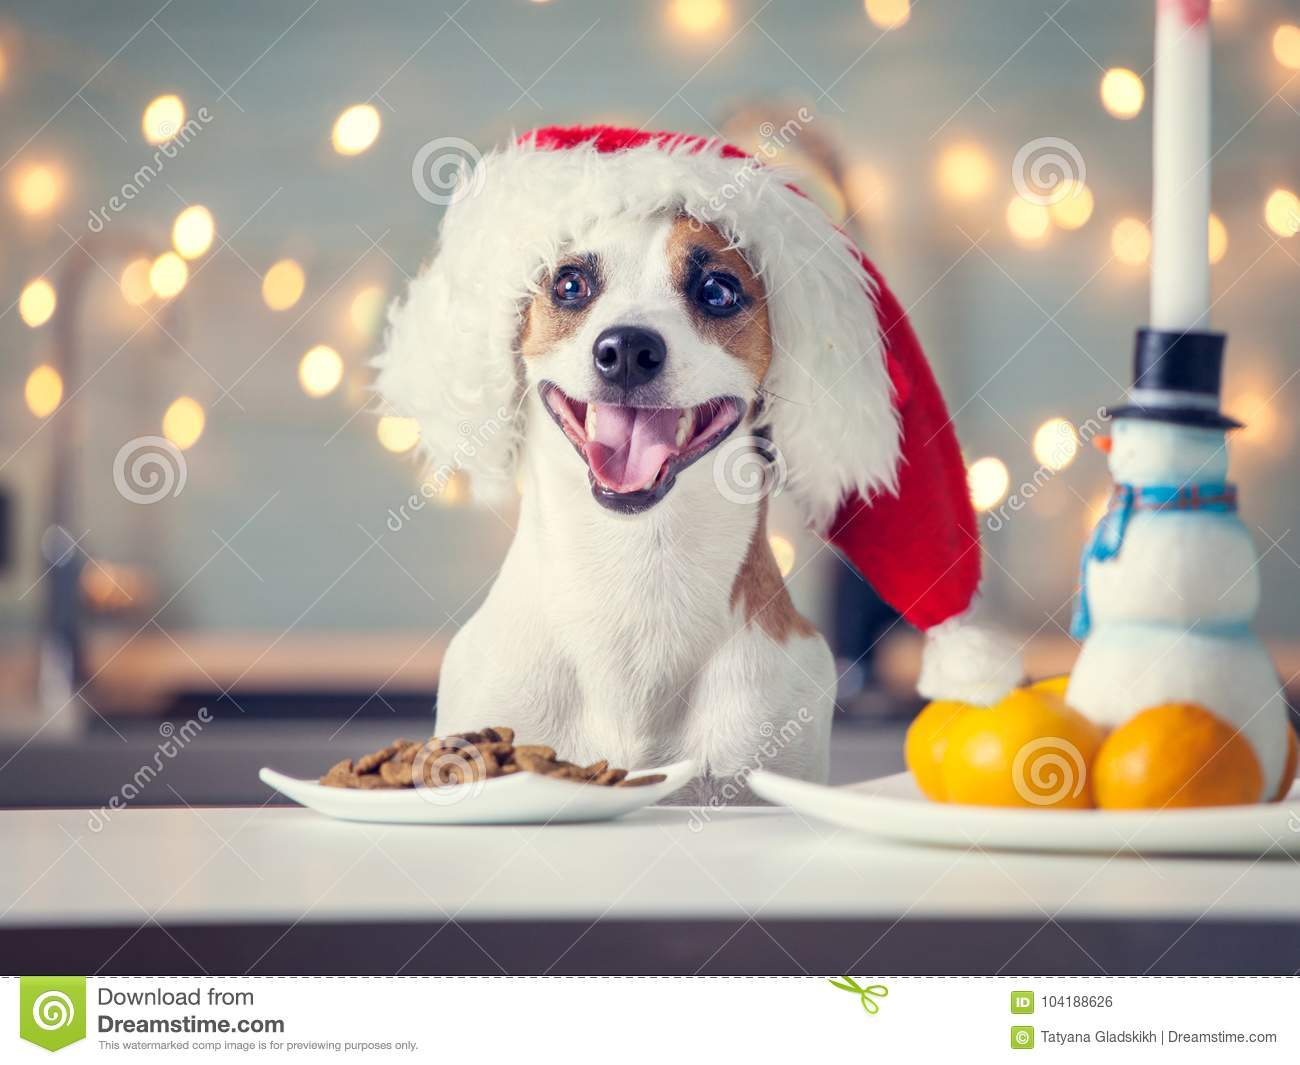 Dog in christmas hat eating food